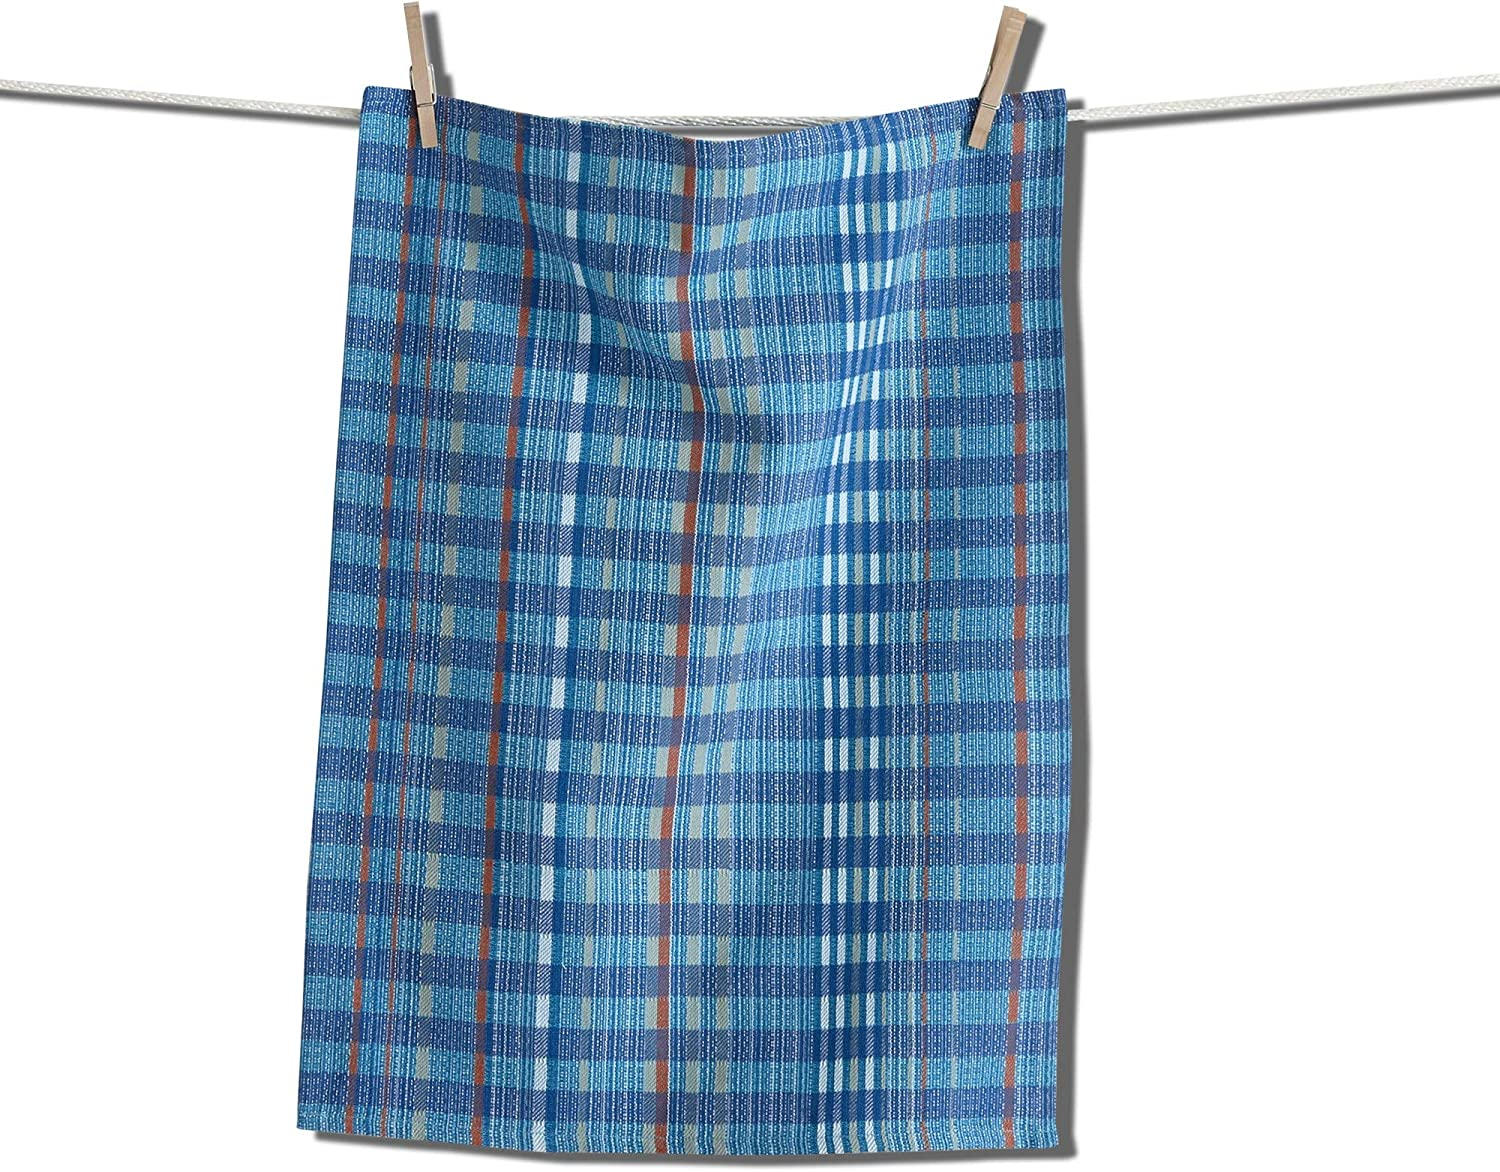 tag Lido Flour Sack Dishtowel Blue Dish Cloth for Drying Dishes and Cooking Blue